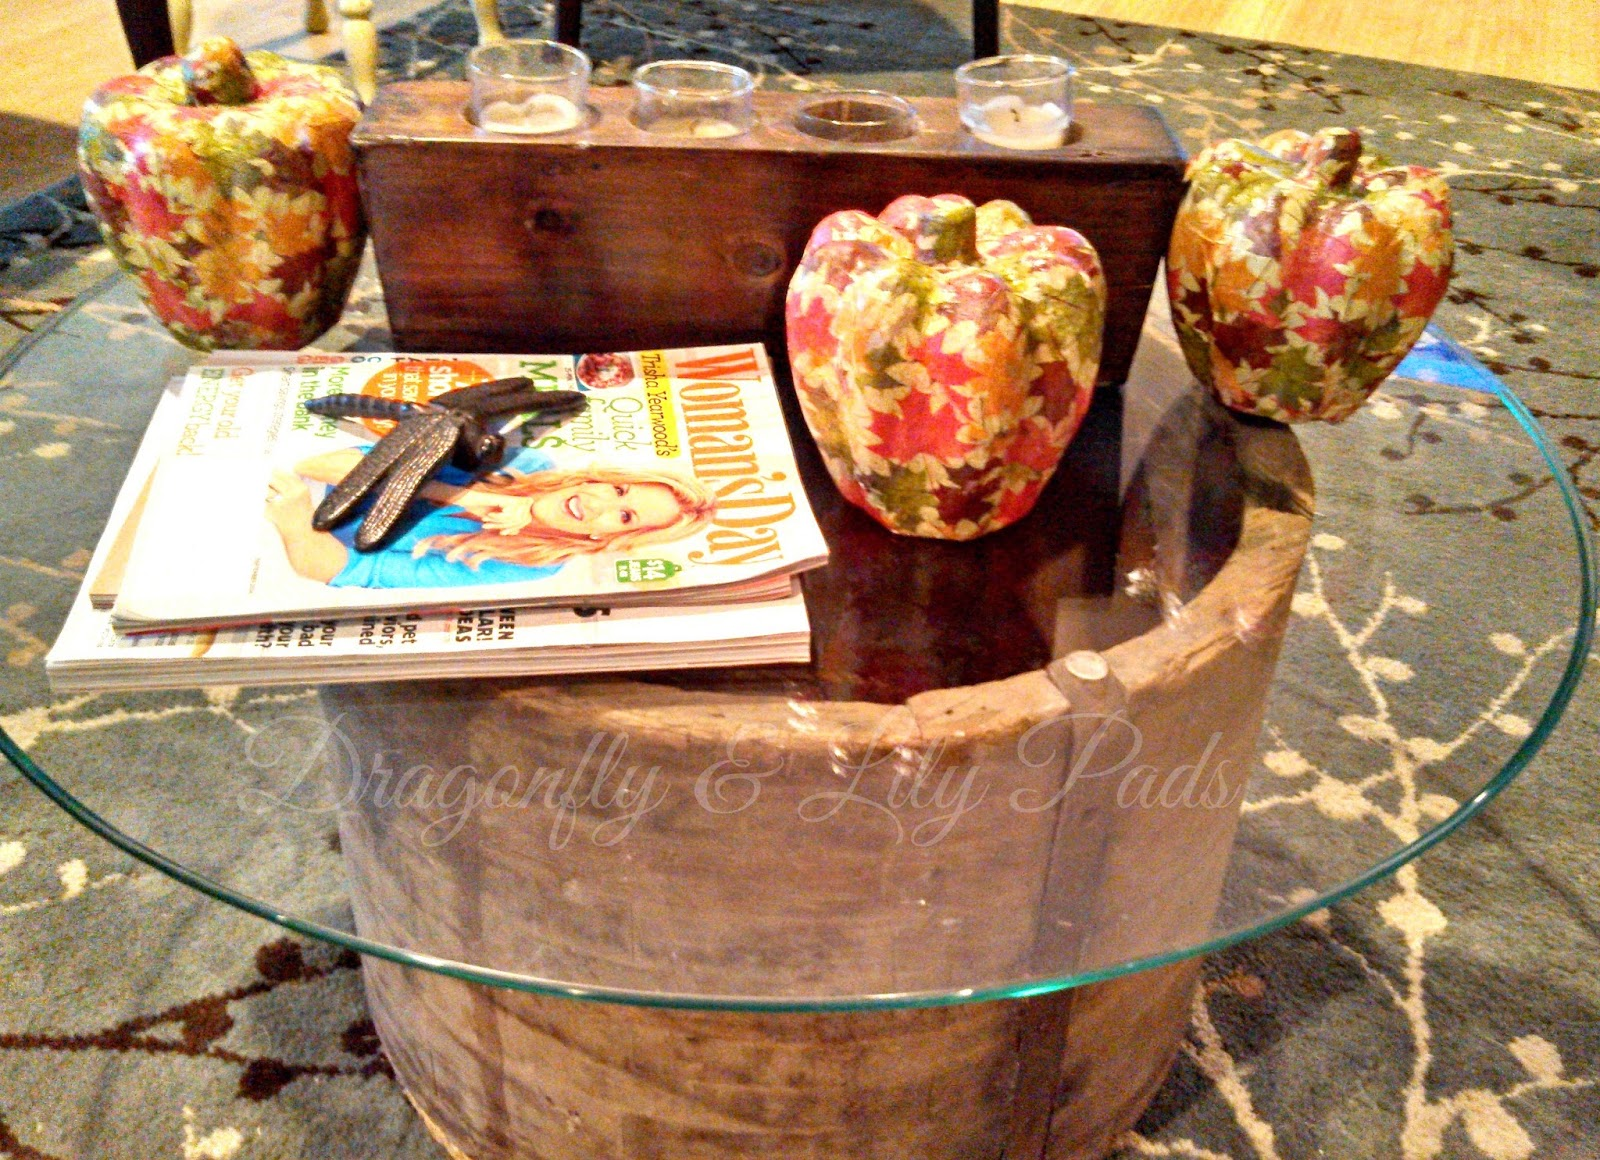 Pumpkins, Fall Leaves decorate pumpkins, Coffee table made from wood and rusty metal ship stack with glass top and rope bottom, dragonfly made of metal, Woman's Day Magazine